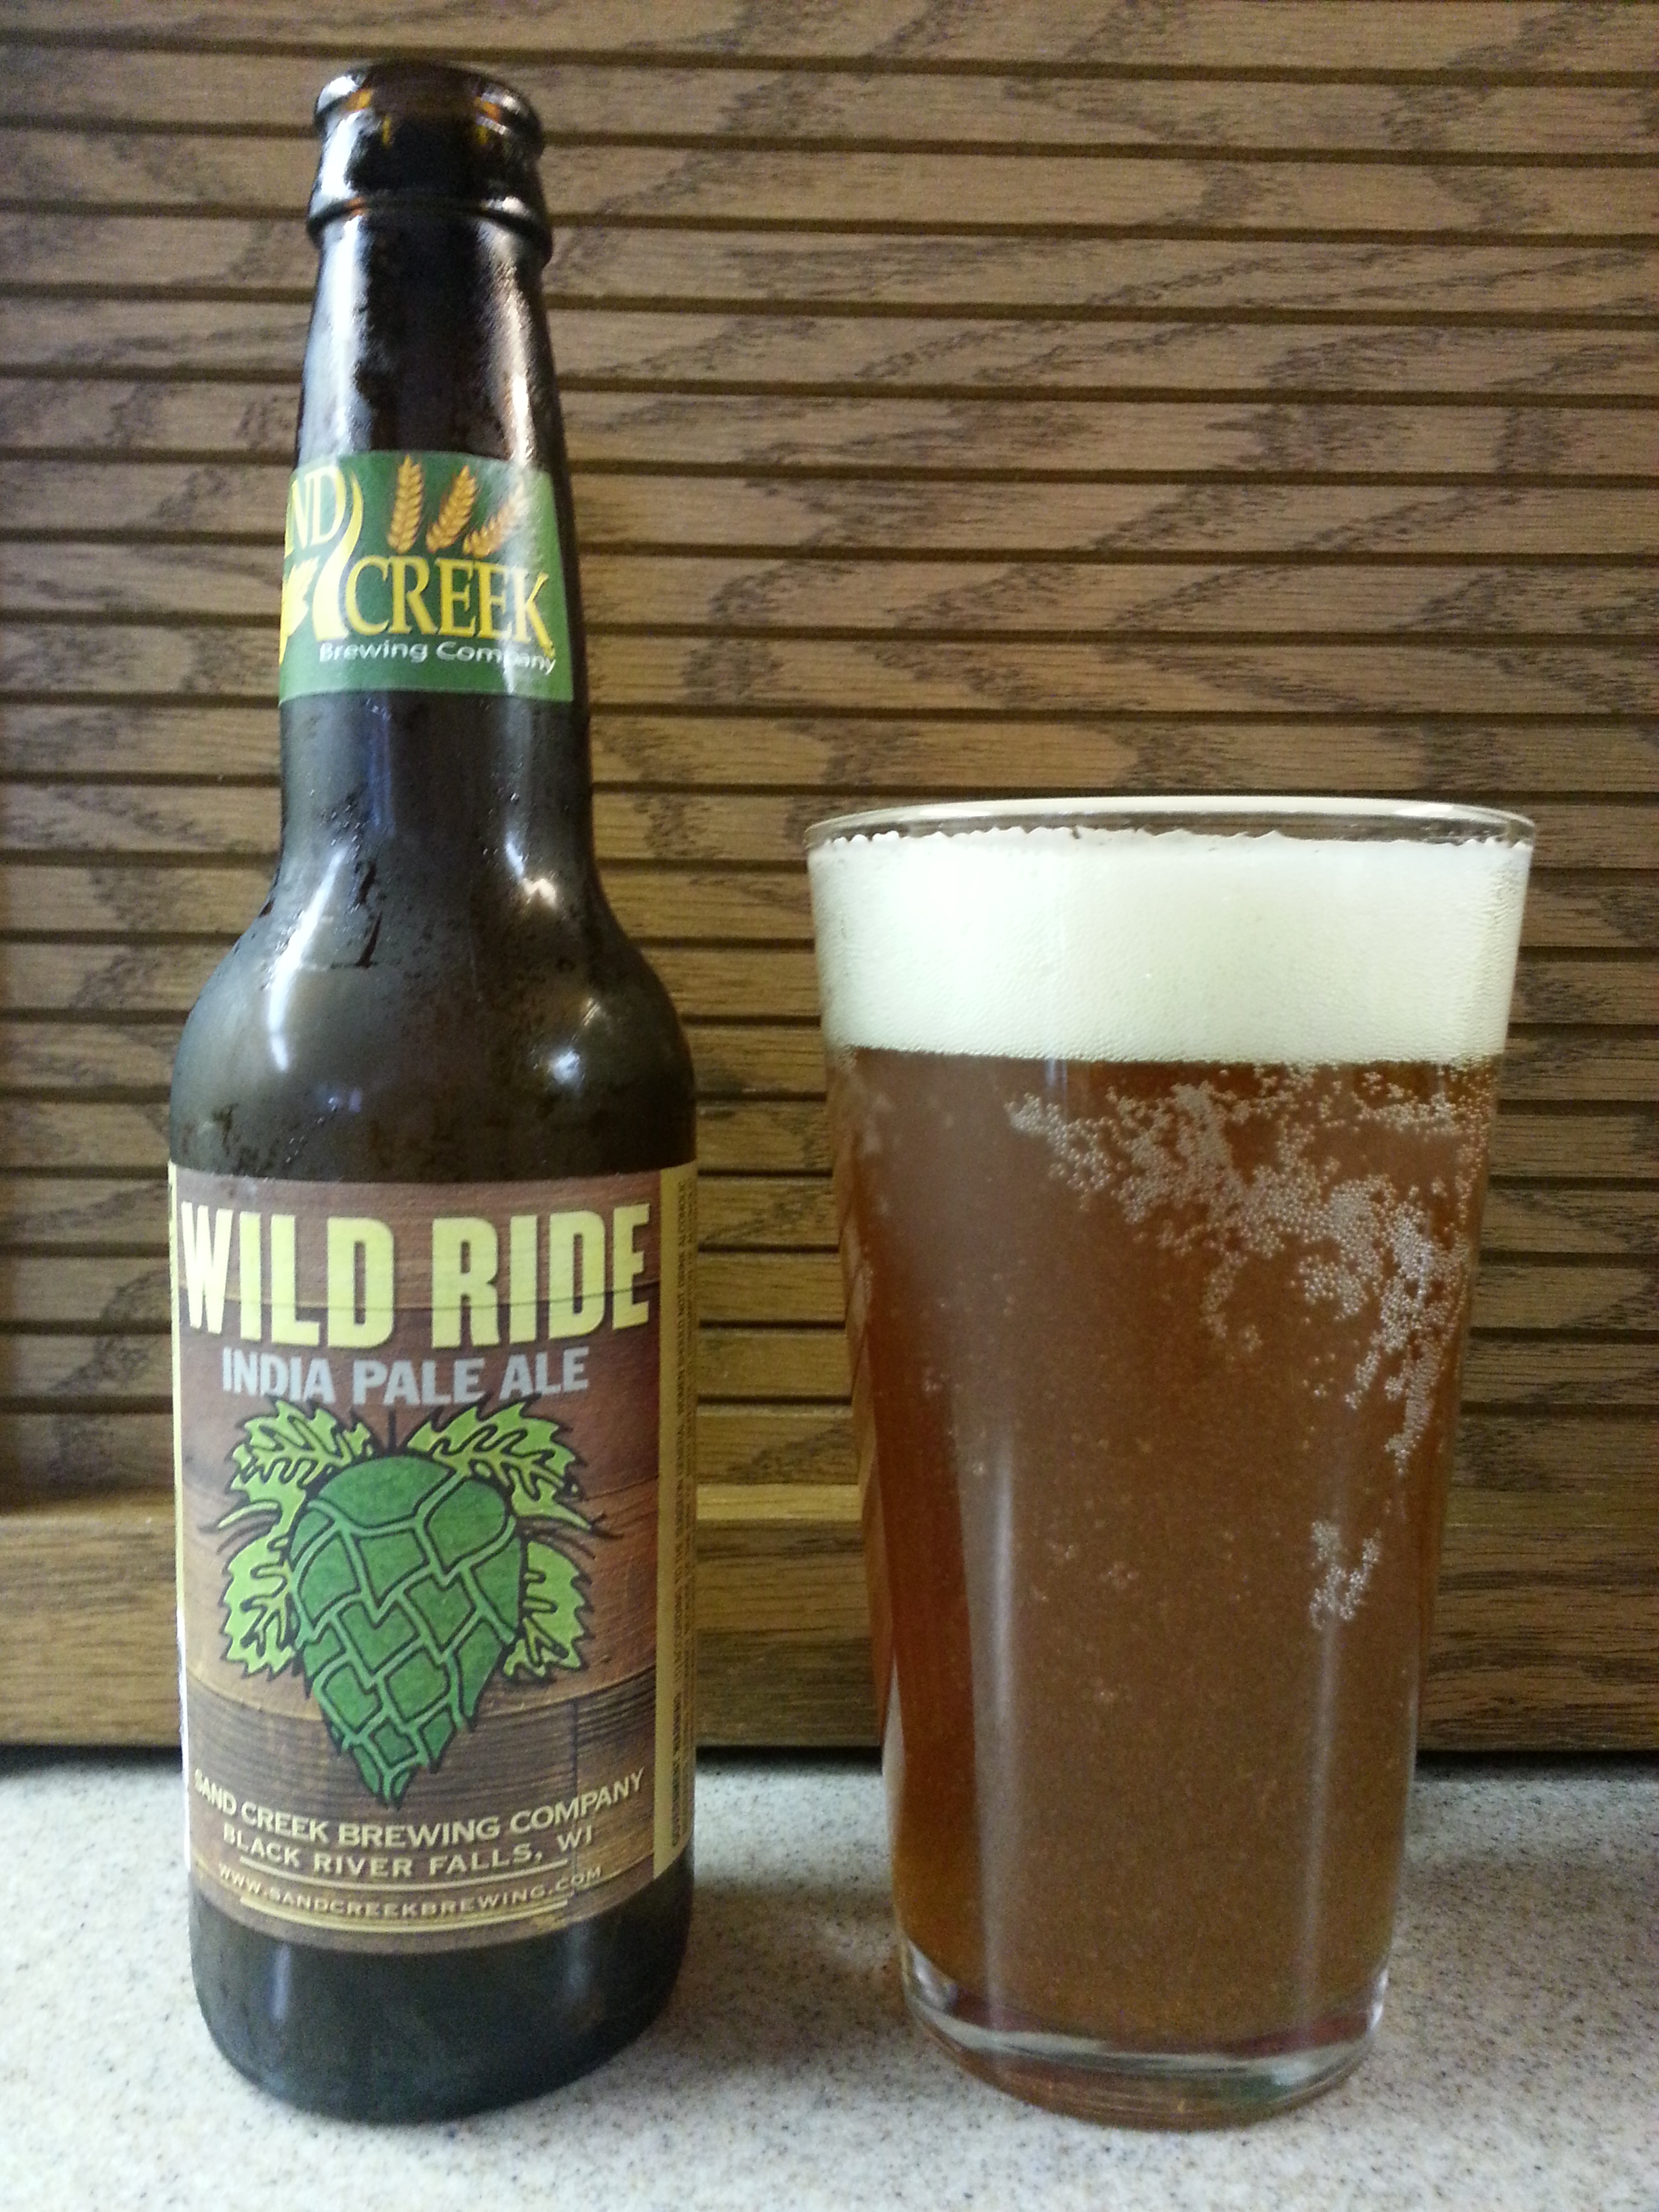 Sand Creek Wild Ride IPA